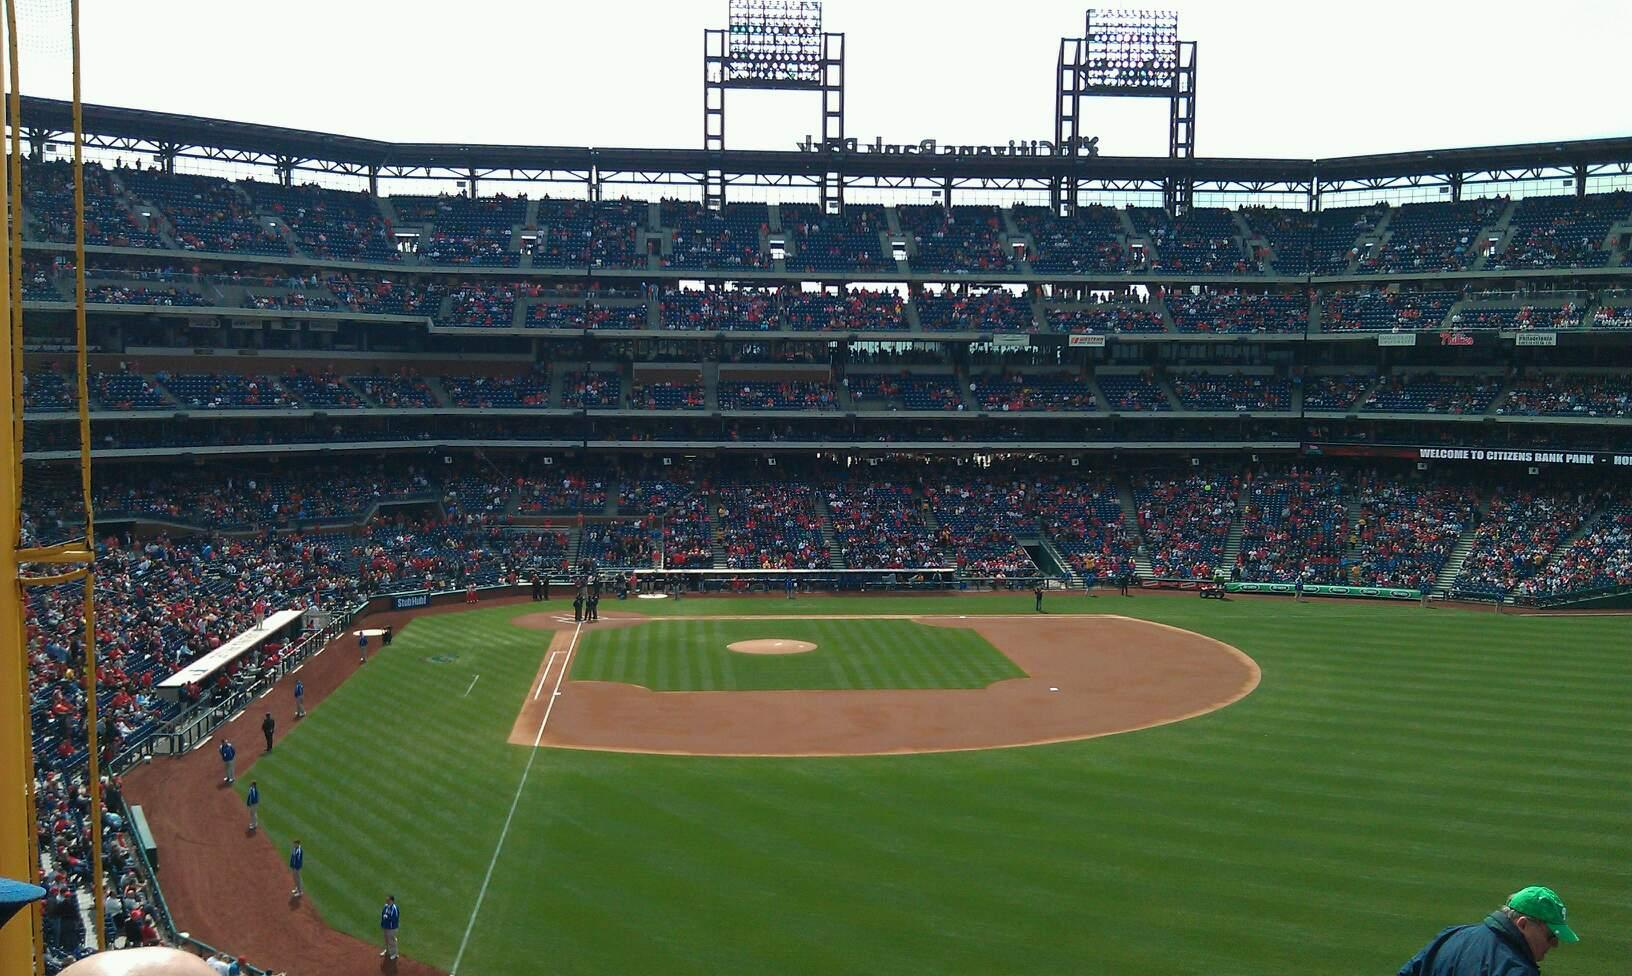 Citizens Bank Park Section 205 Row 8 Seat 5